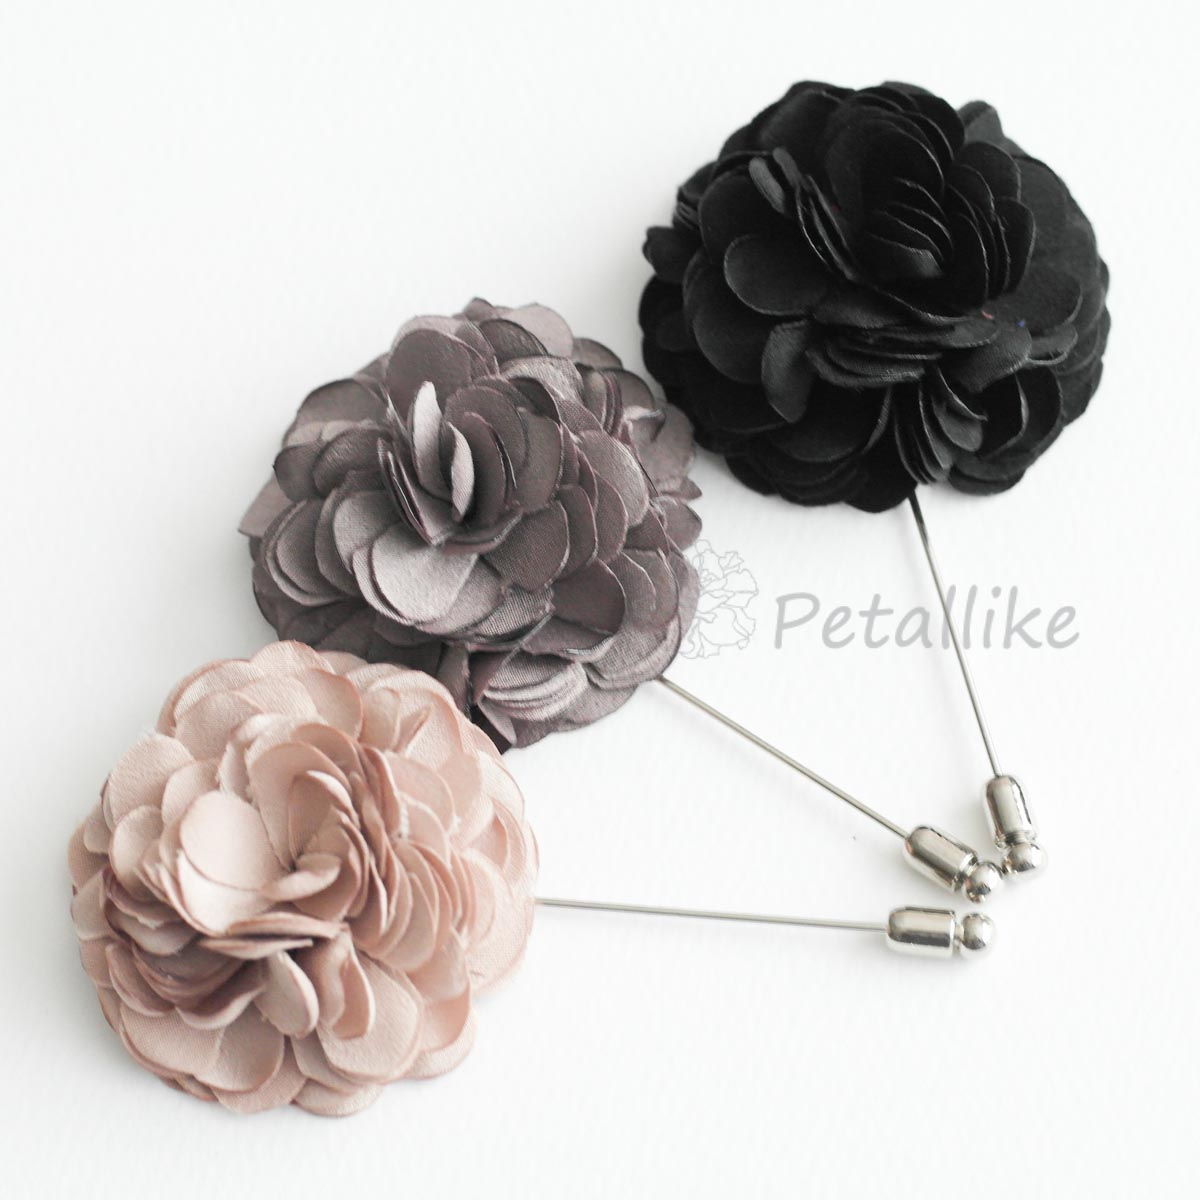 Soft satin blossom Men's Flower Boutonniere / Buttonhole For Wedding,Lapel Pin,Tie Pin